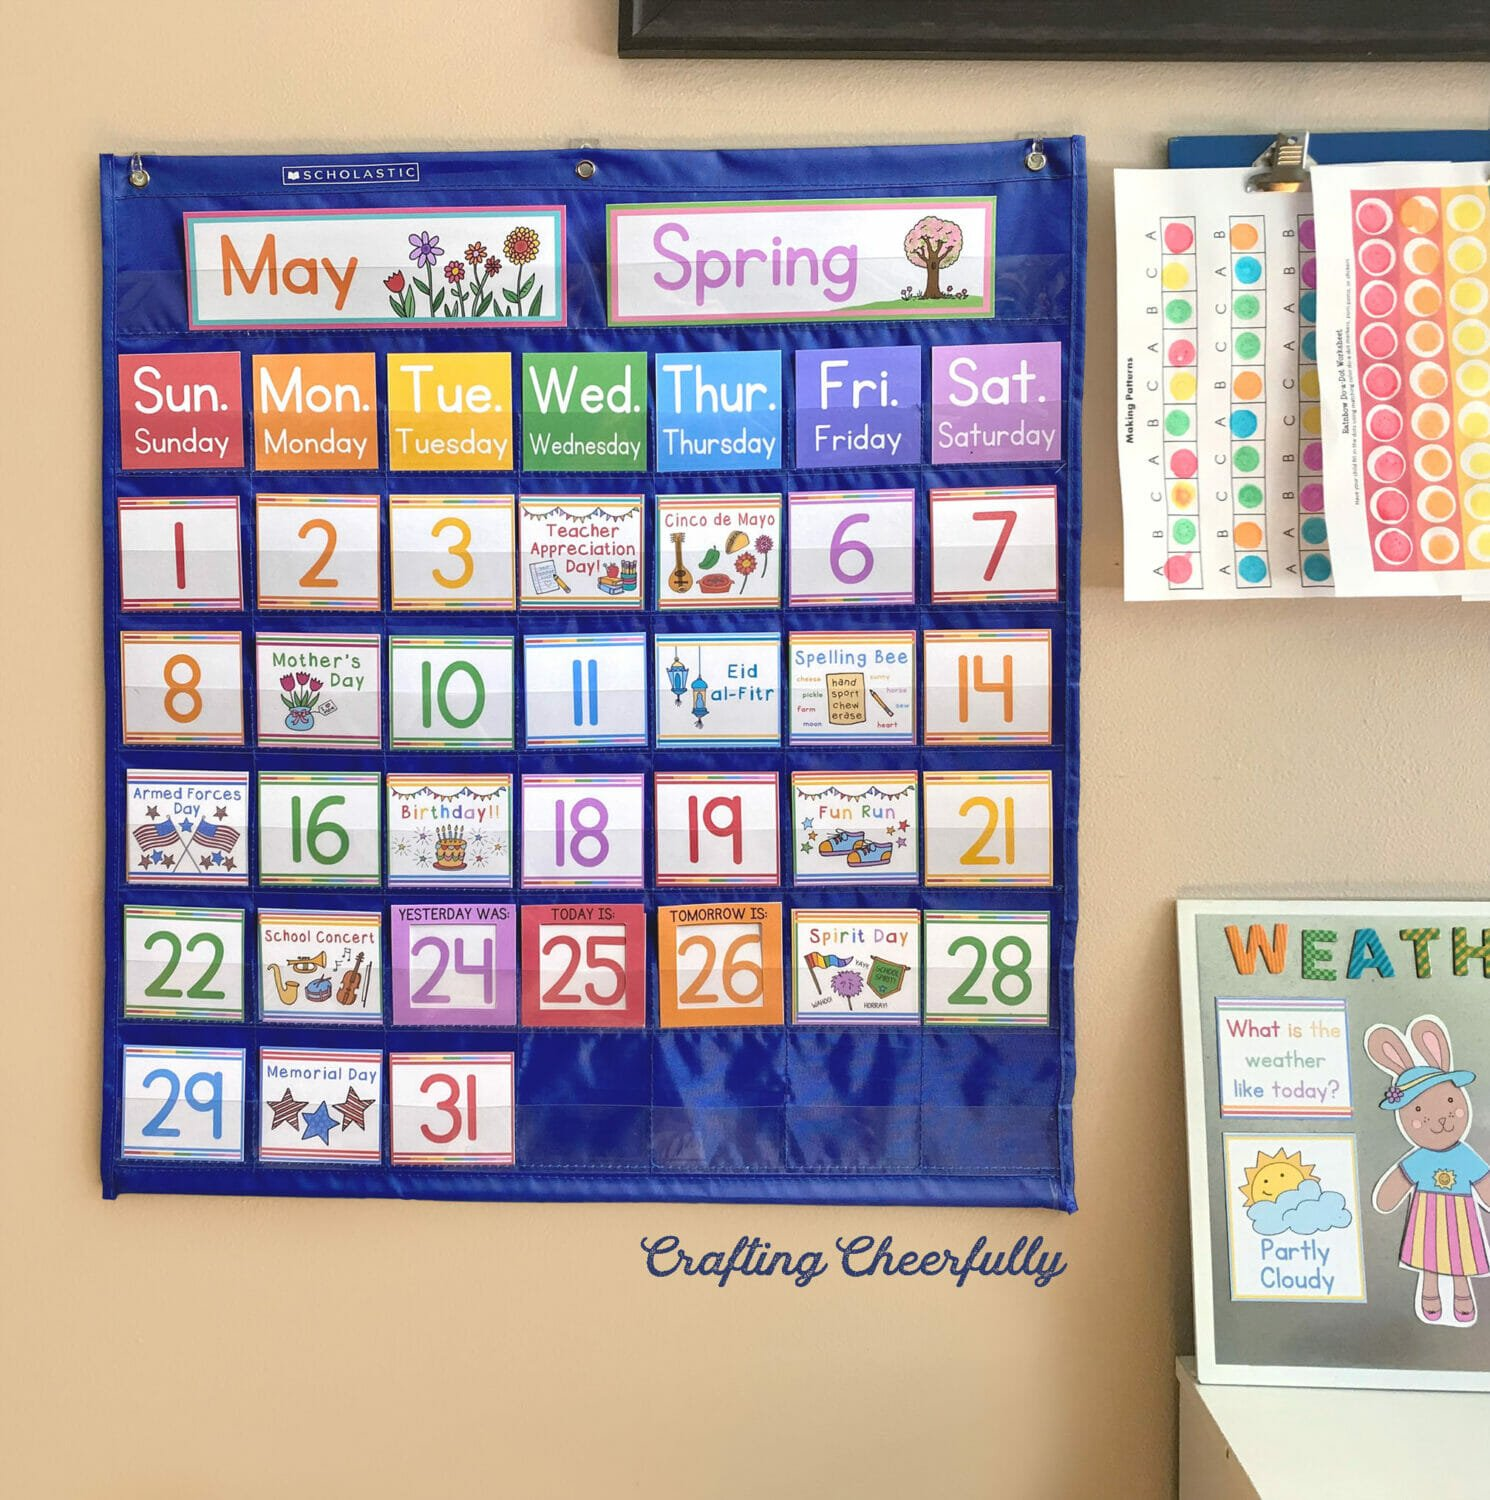 Pocket chart calendar hanging on a wall with colorful kids drawings by it.